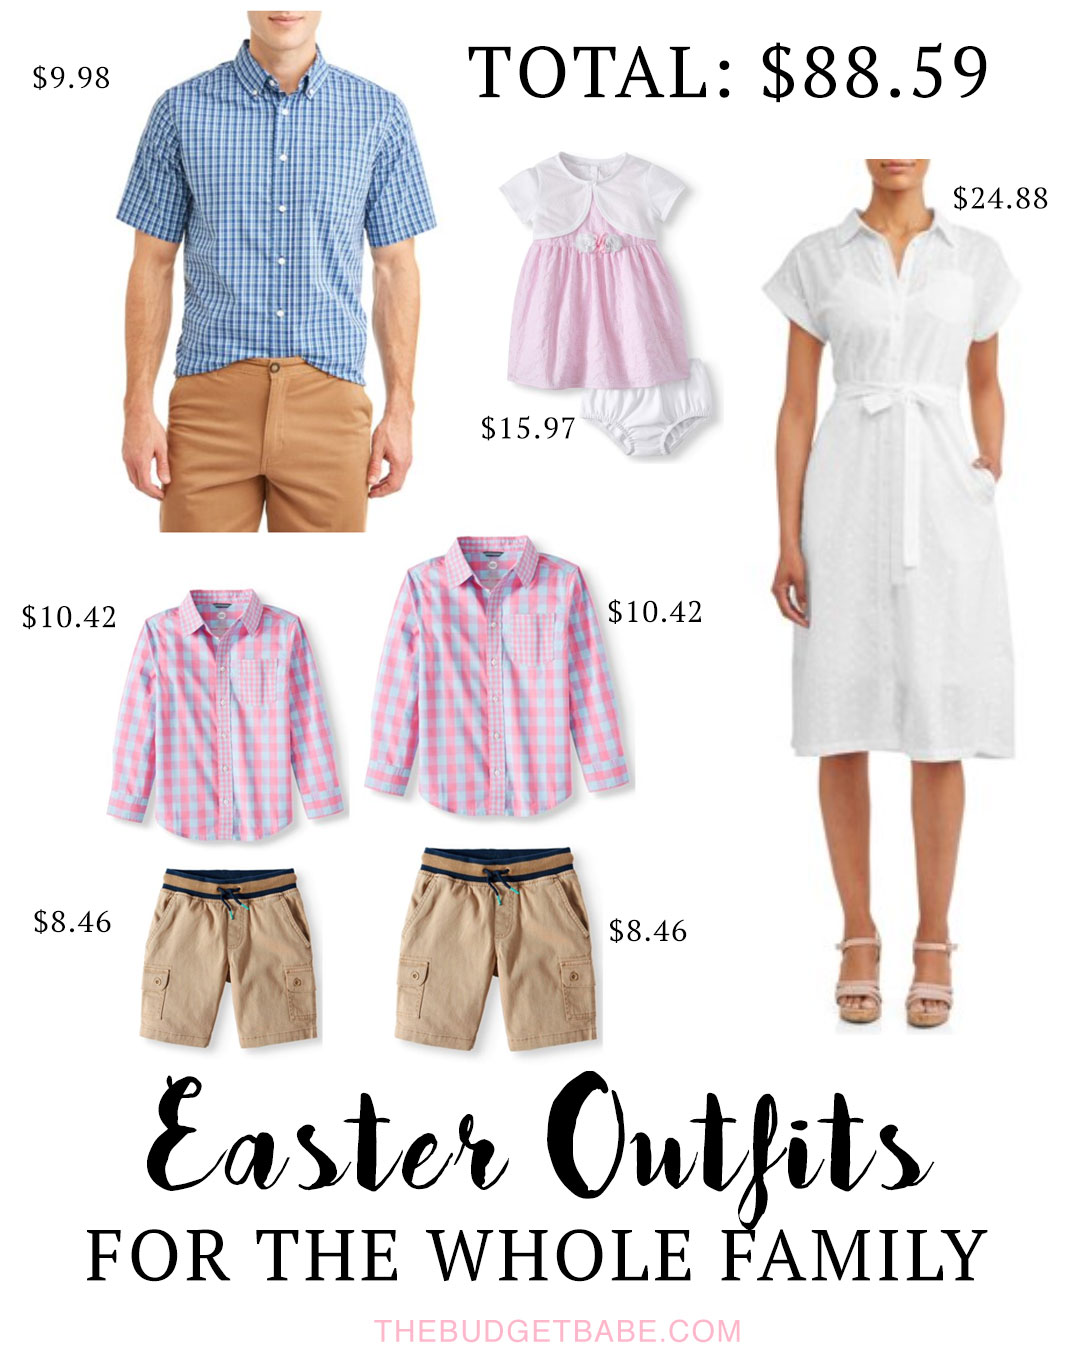 Easter Outfits for the Whole Family on a Budget - Under $100 Total!